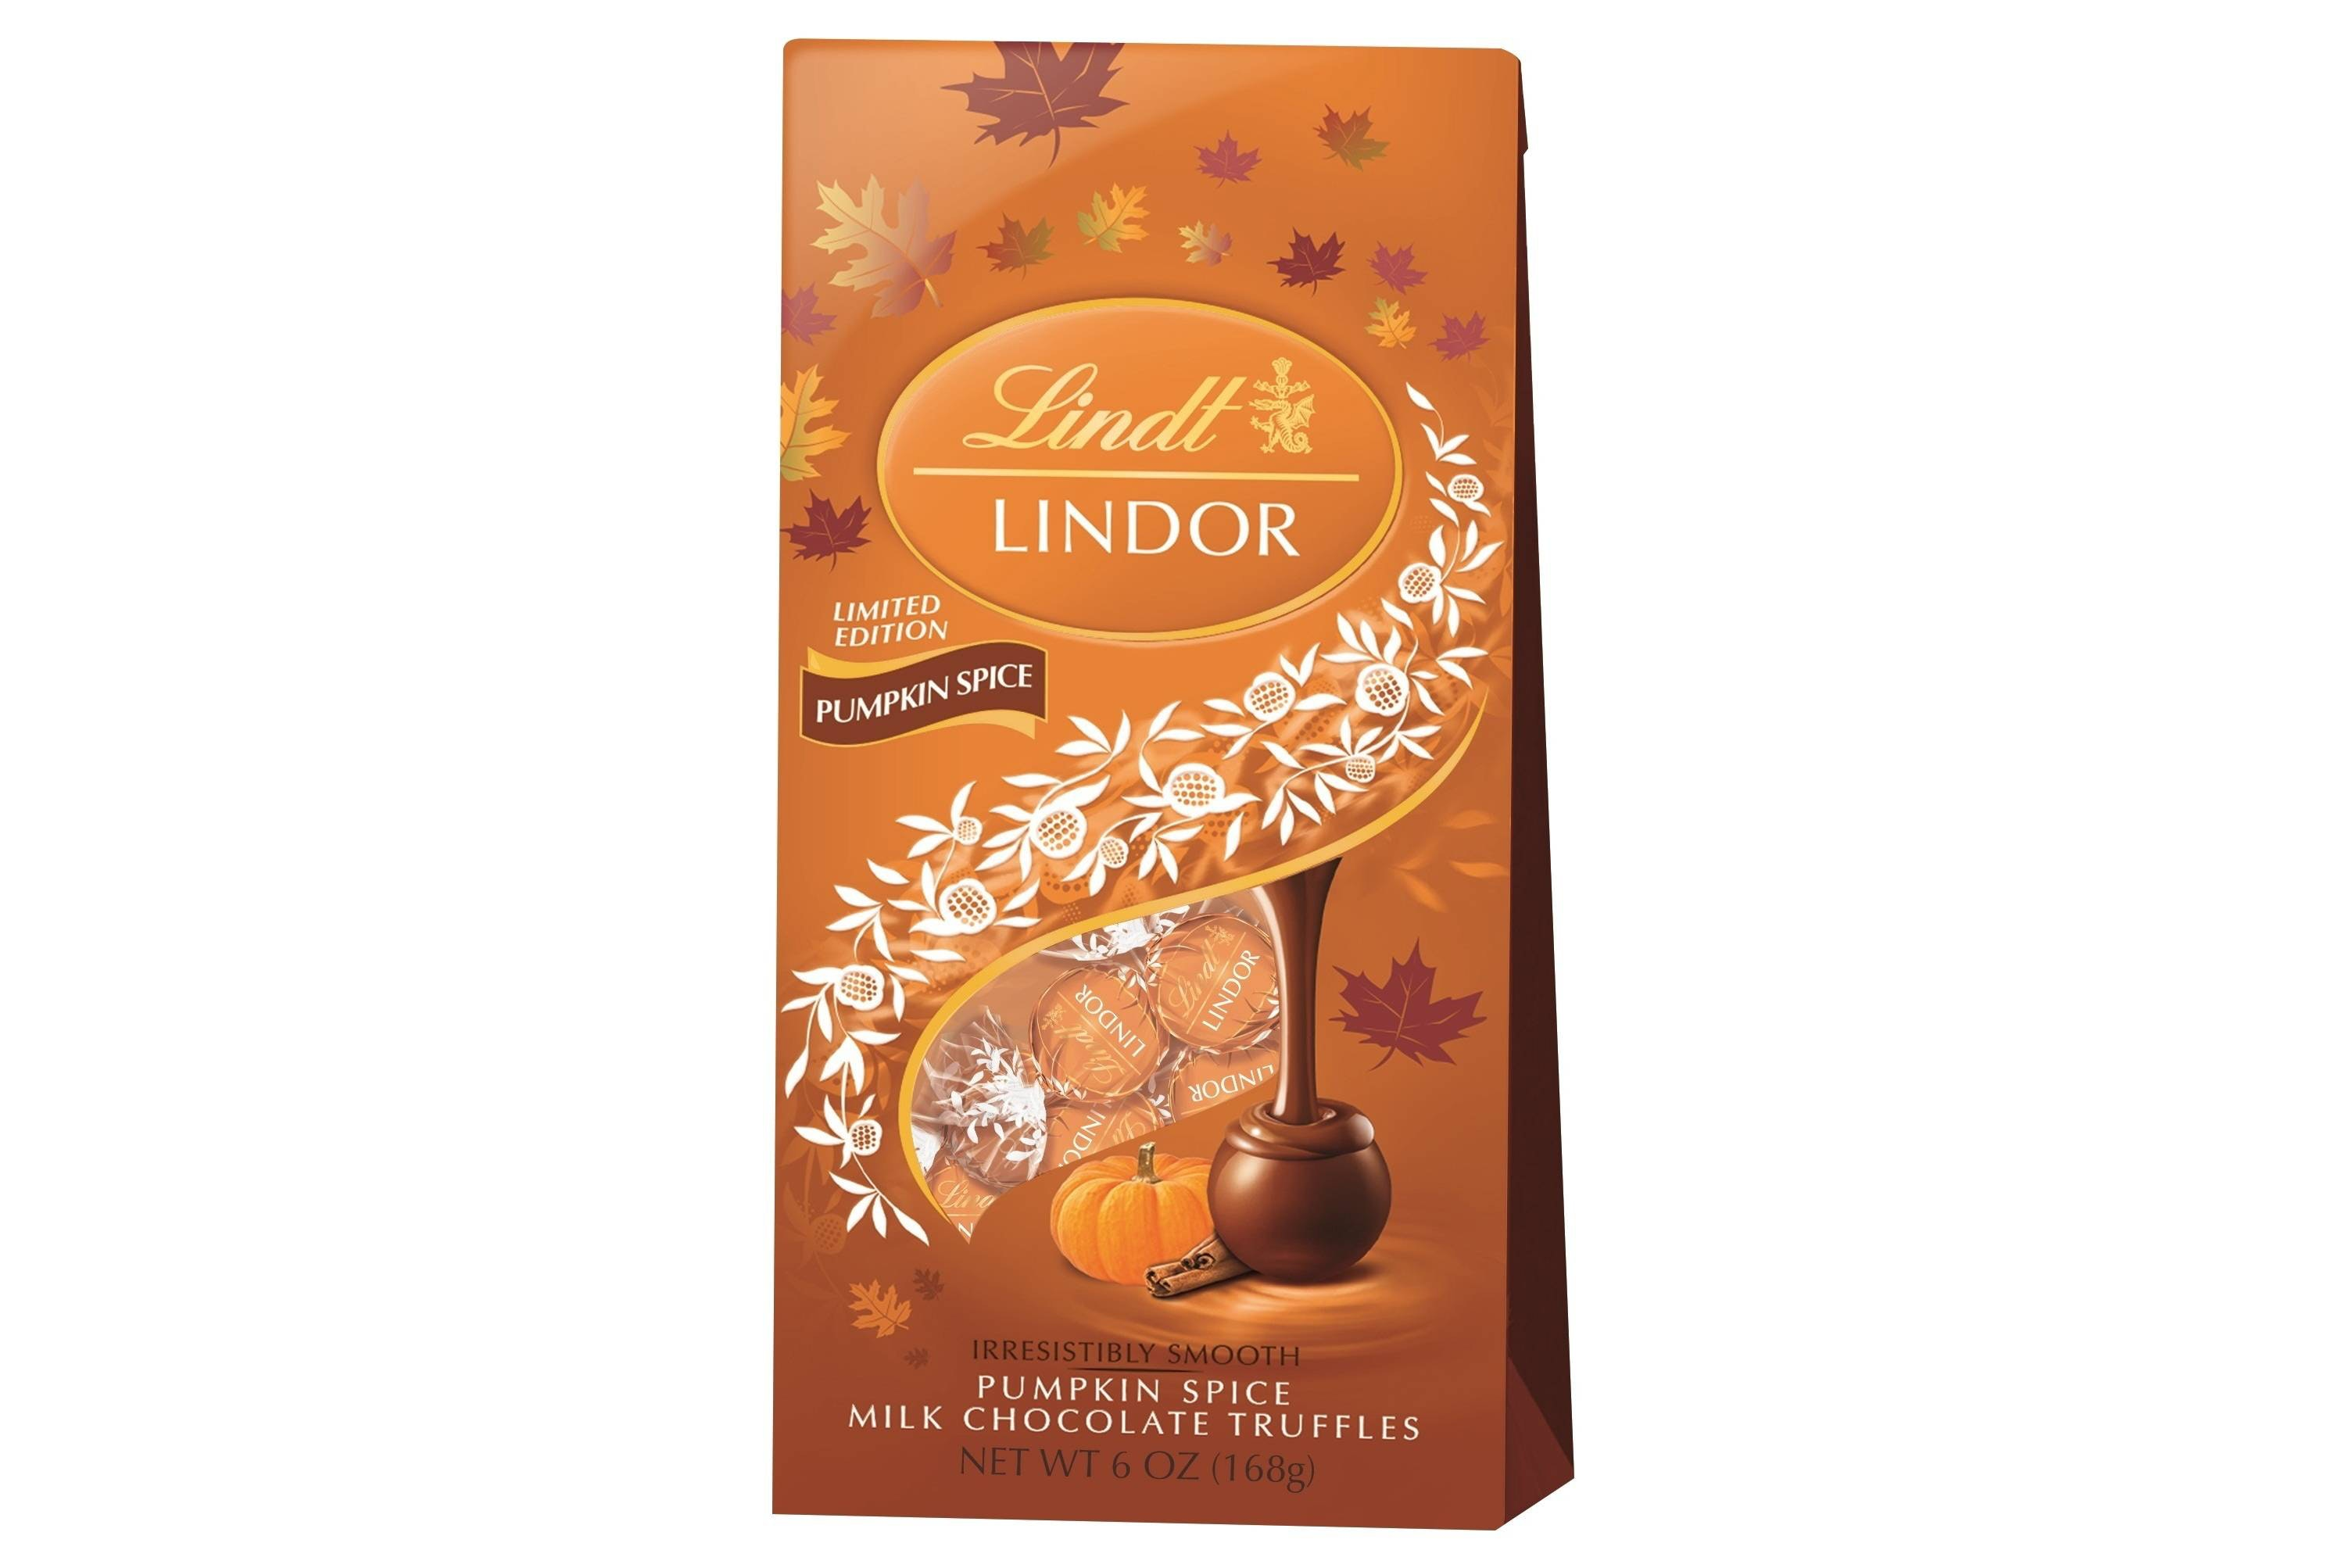 This truly luxurious pumpkin spice treat for chocoholics